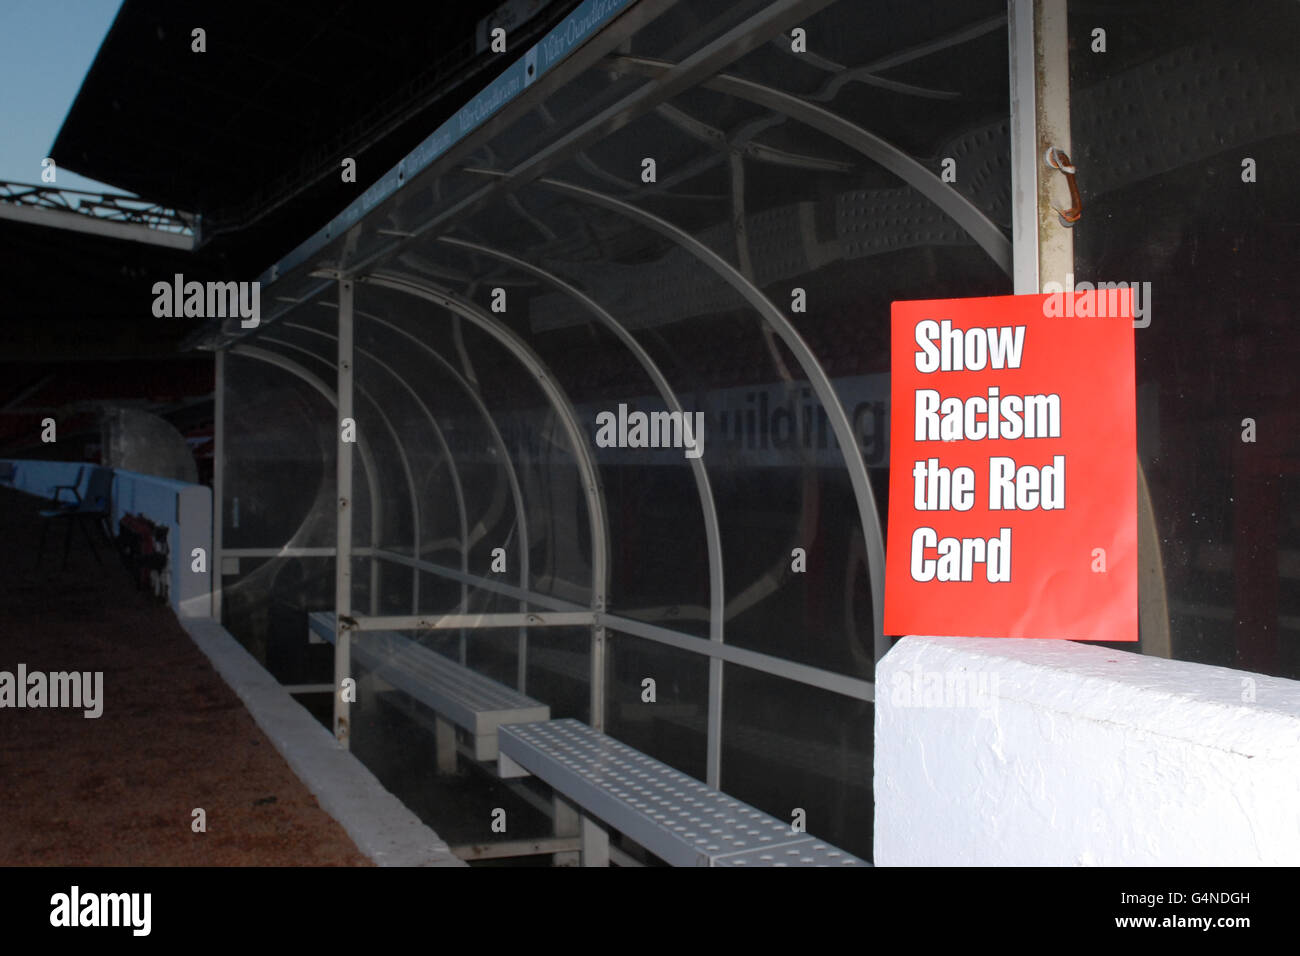 Soccer - Show Racism The Red Card Event - City Ground - Stock Image